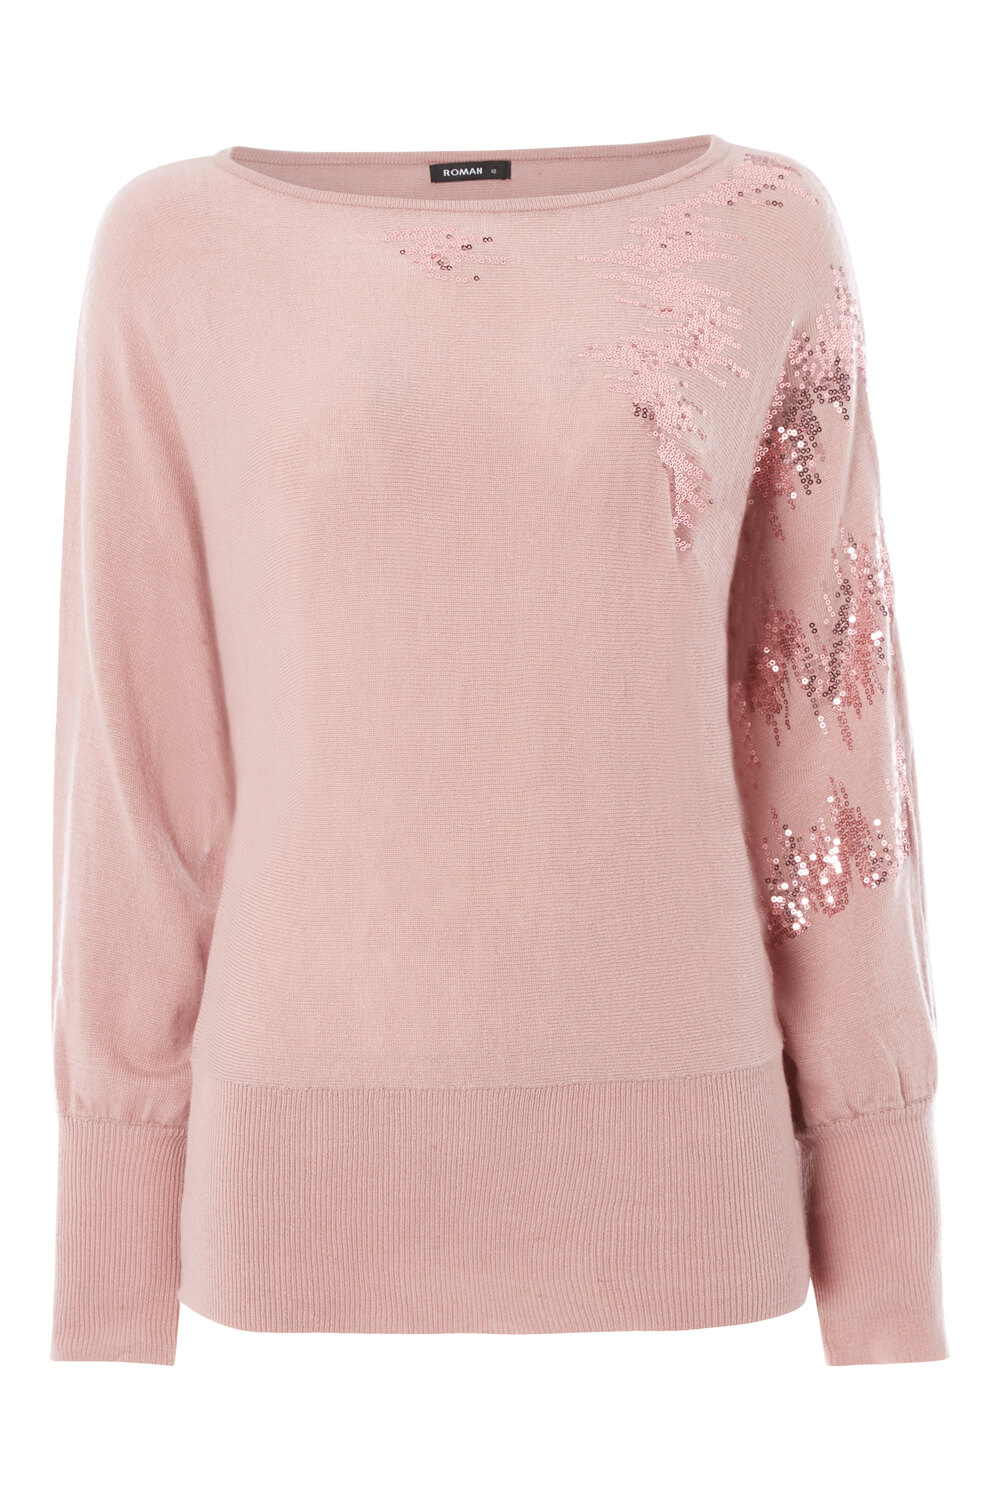 Roman-Originals-Women-039-s-Sequin-Embellished-Batwing-Sleeve-Boat-Neck-Jumper thumbnail 22